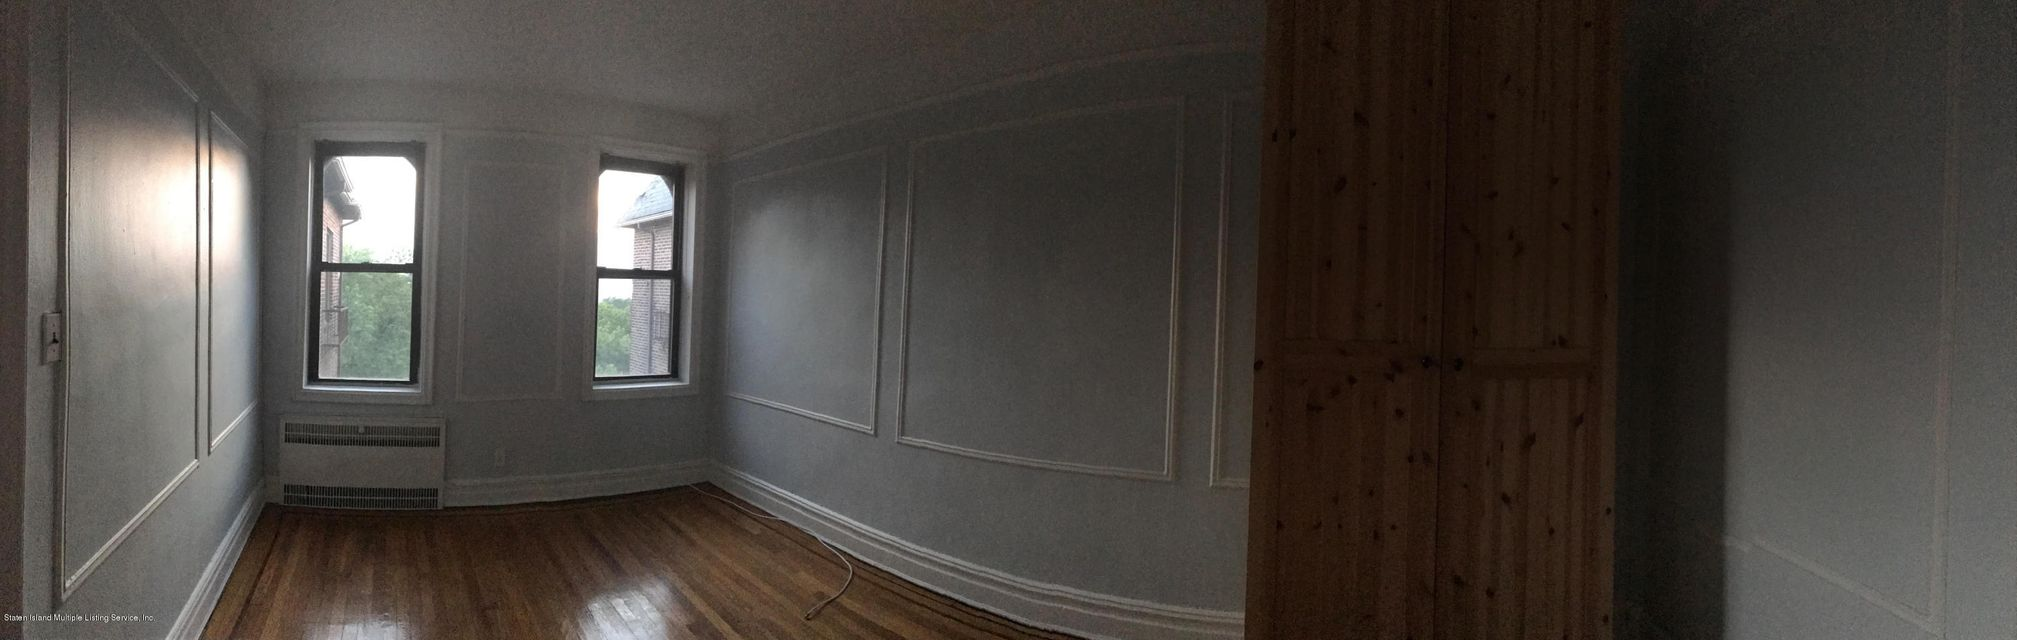 Additional photo for property listing at 215 Hart Boulevard  Staten Island, New York 10301 United States